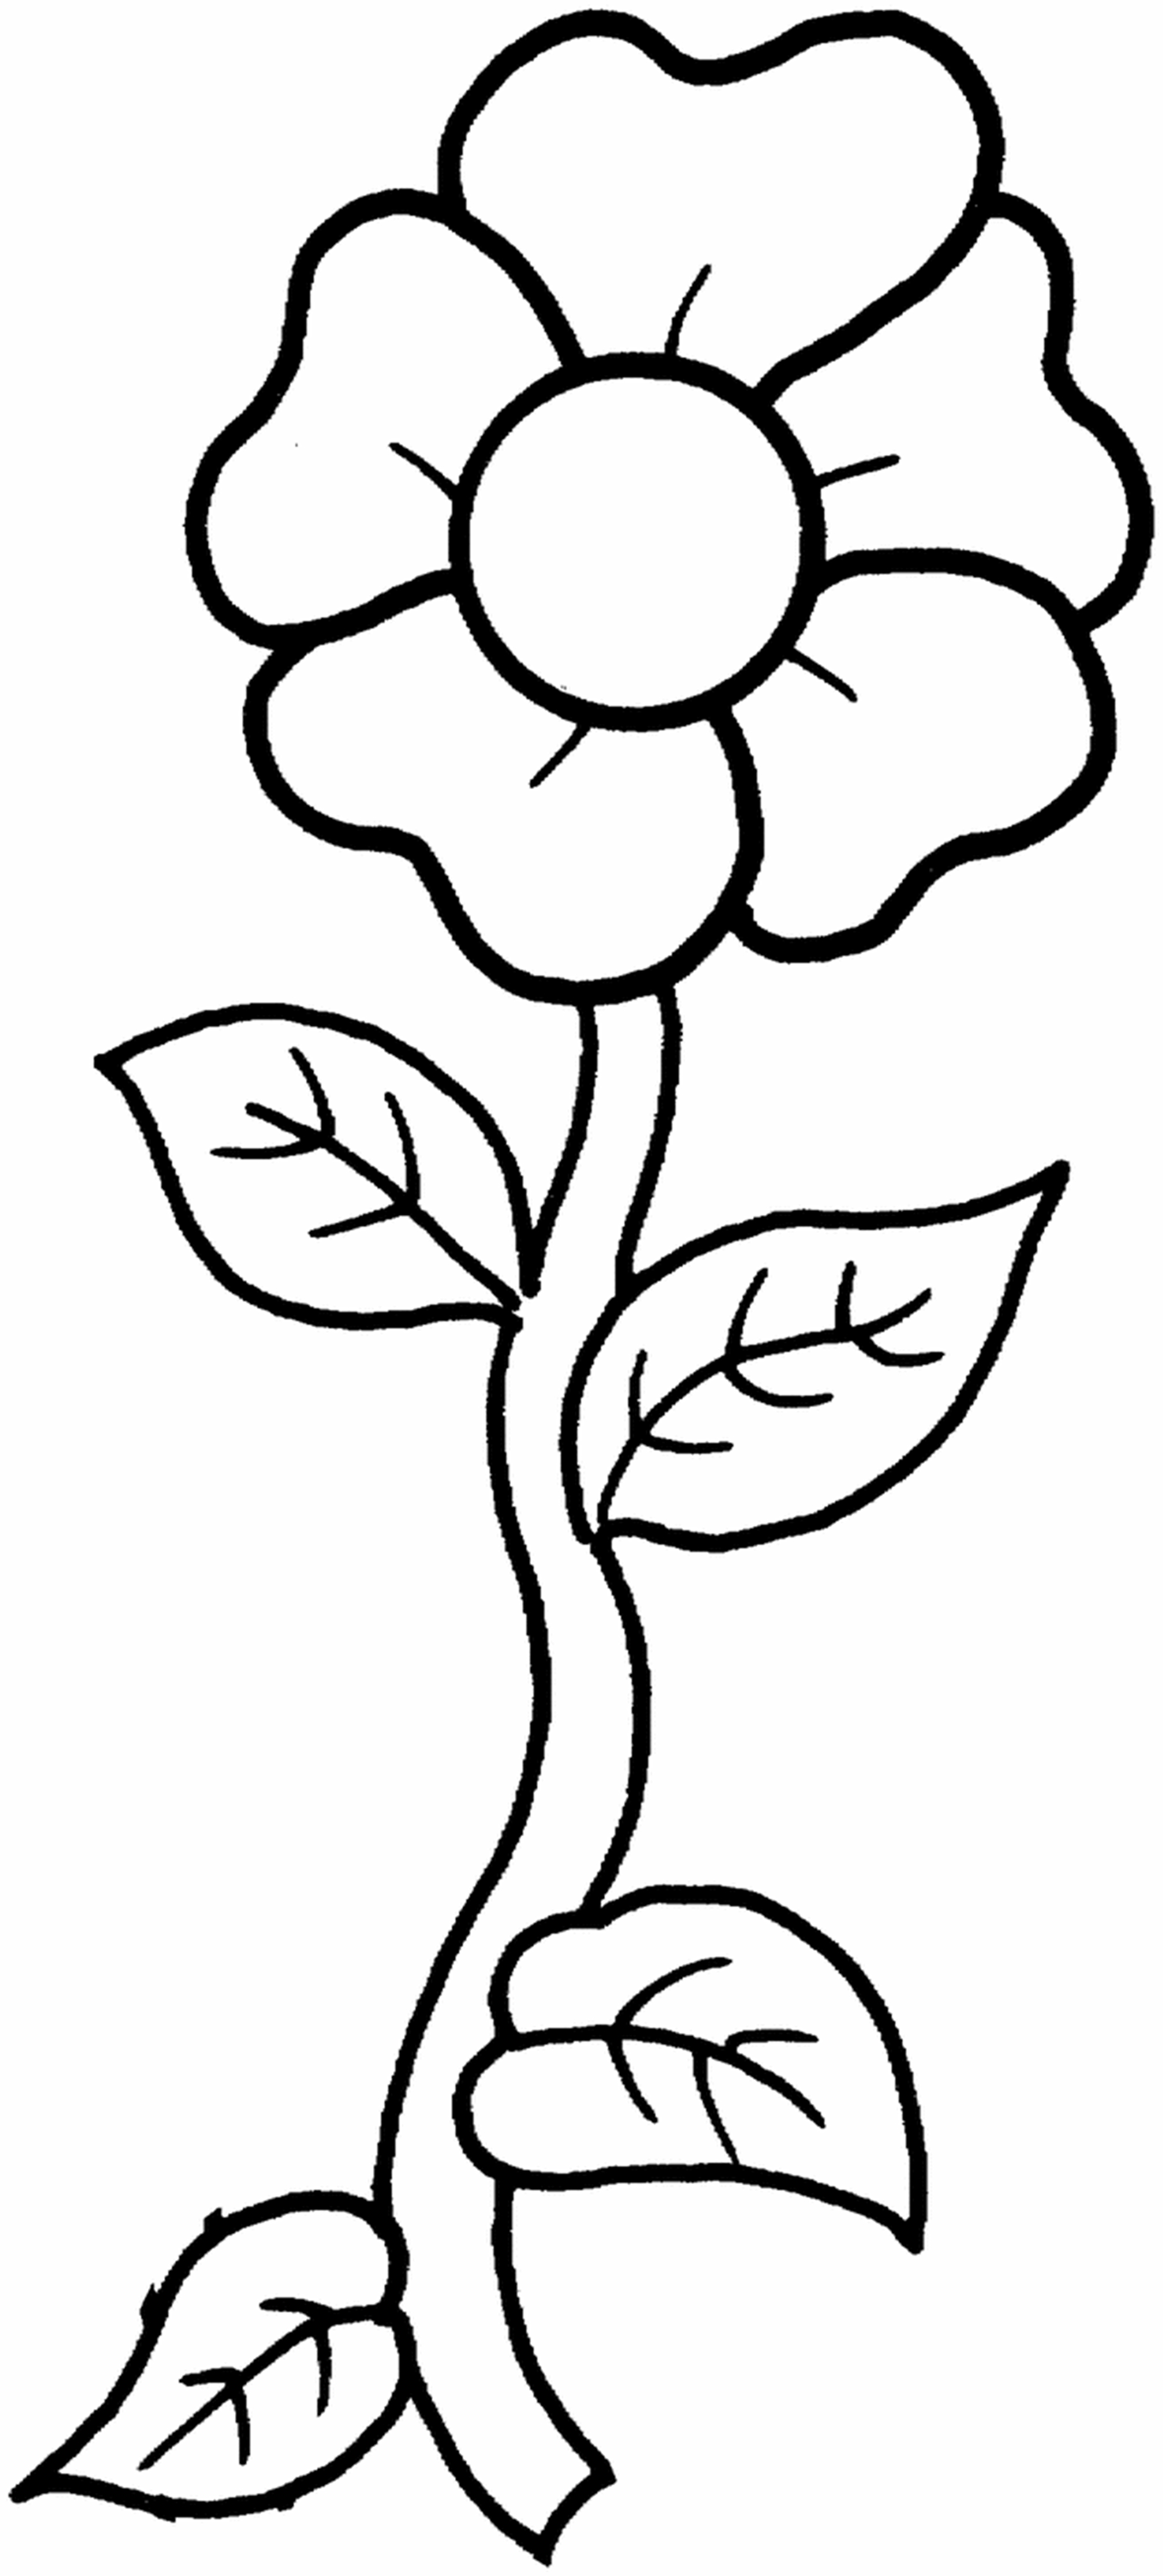 color page flower poppy flowers coloring pages download and print for free page flower color